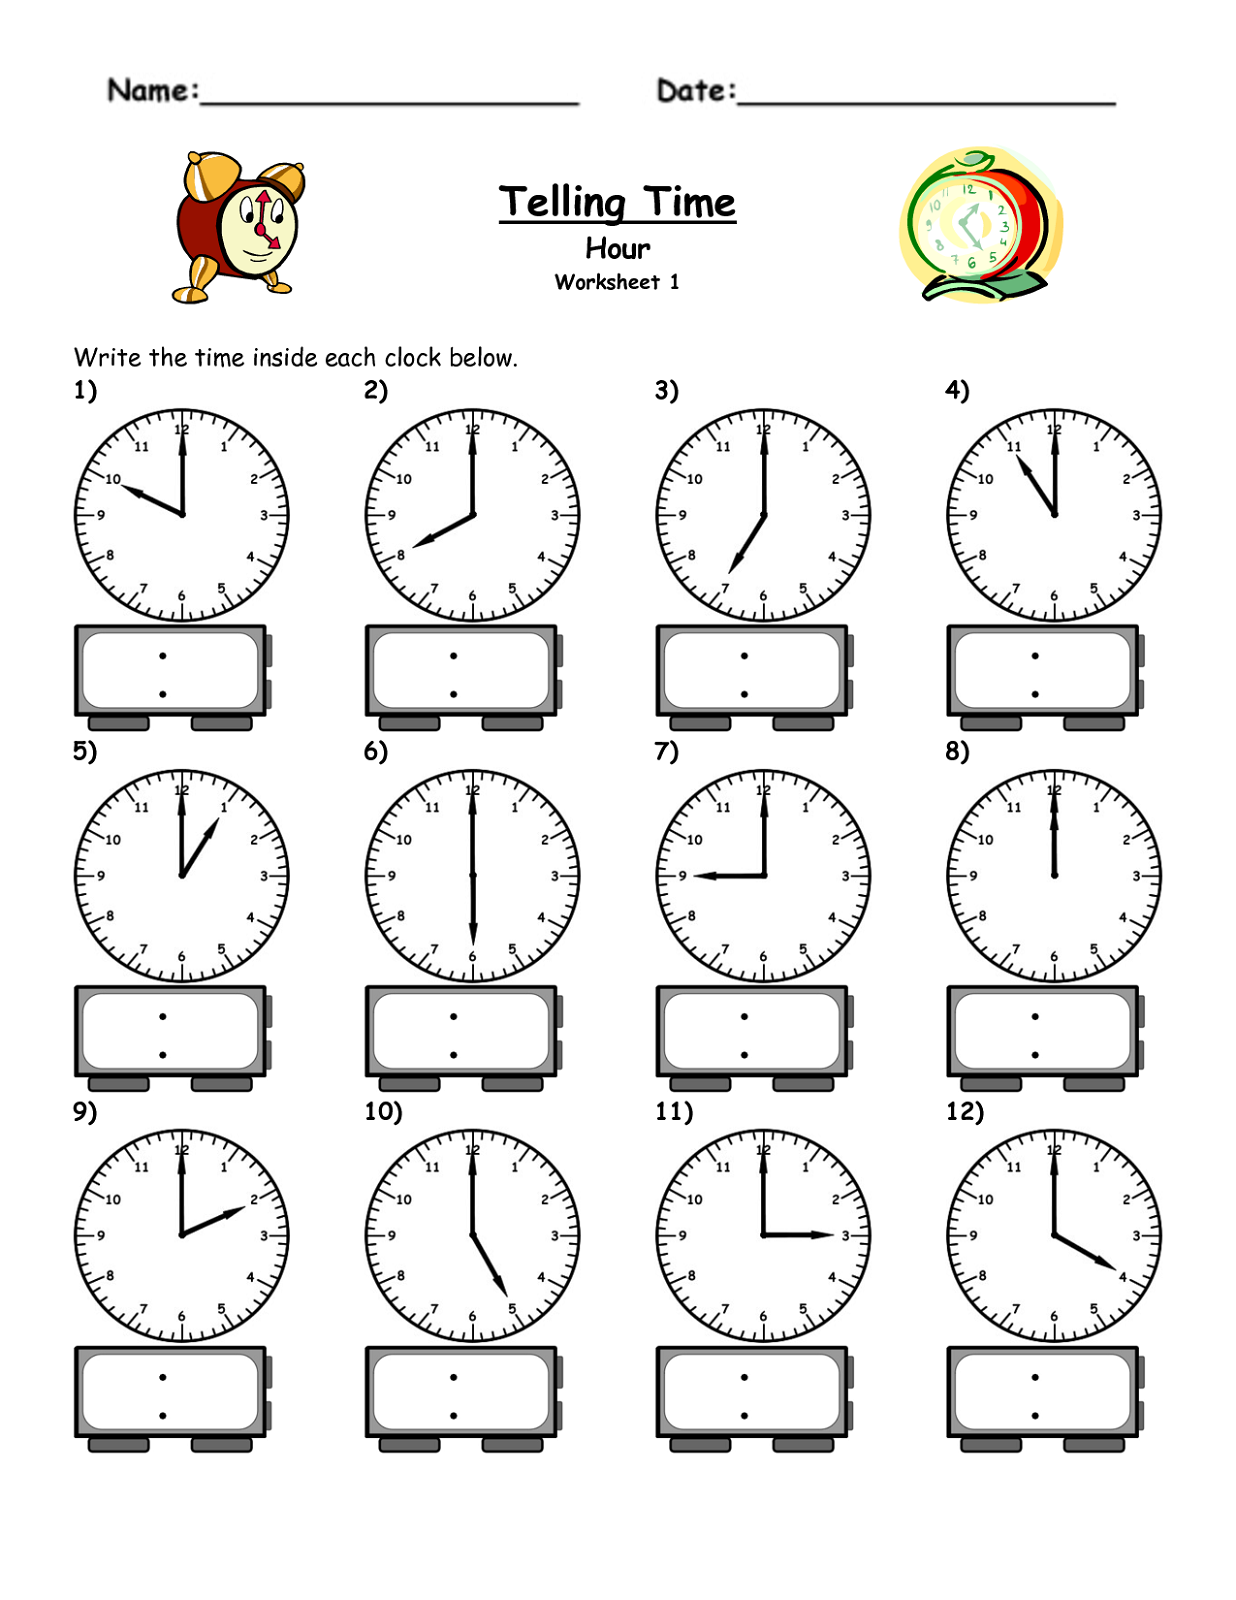 Free Easy Elapsed Time Worksheets – Telling Time to the Hour Worksheet